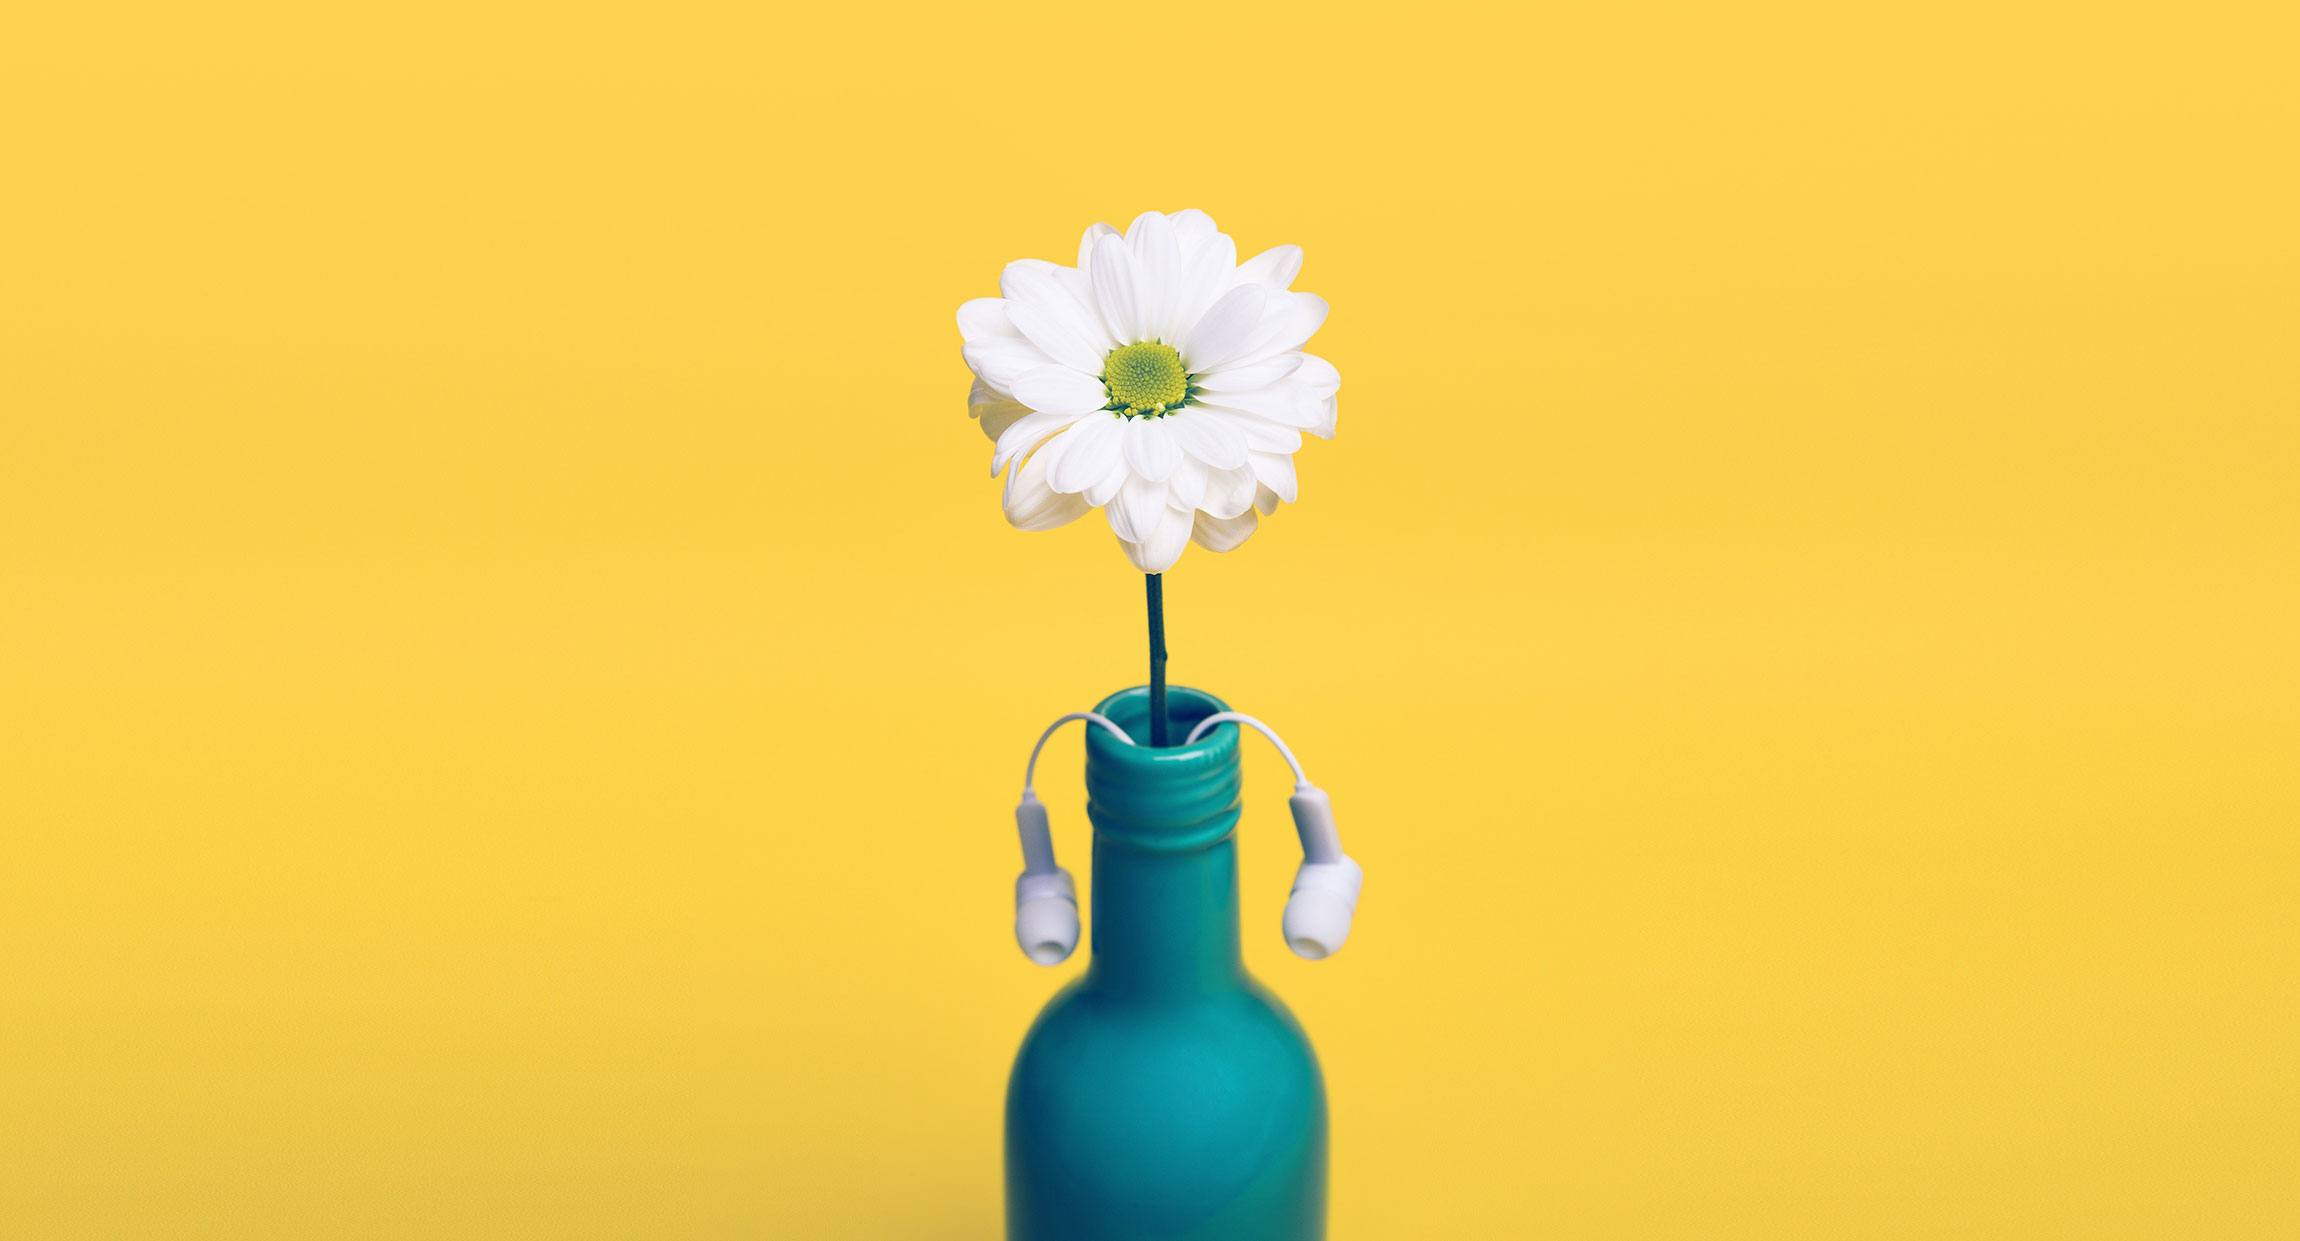 yellow-daisy-bottle-vase-headphones-earbuds-decor